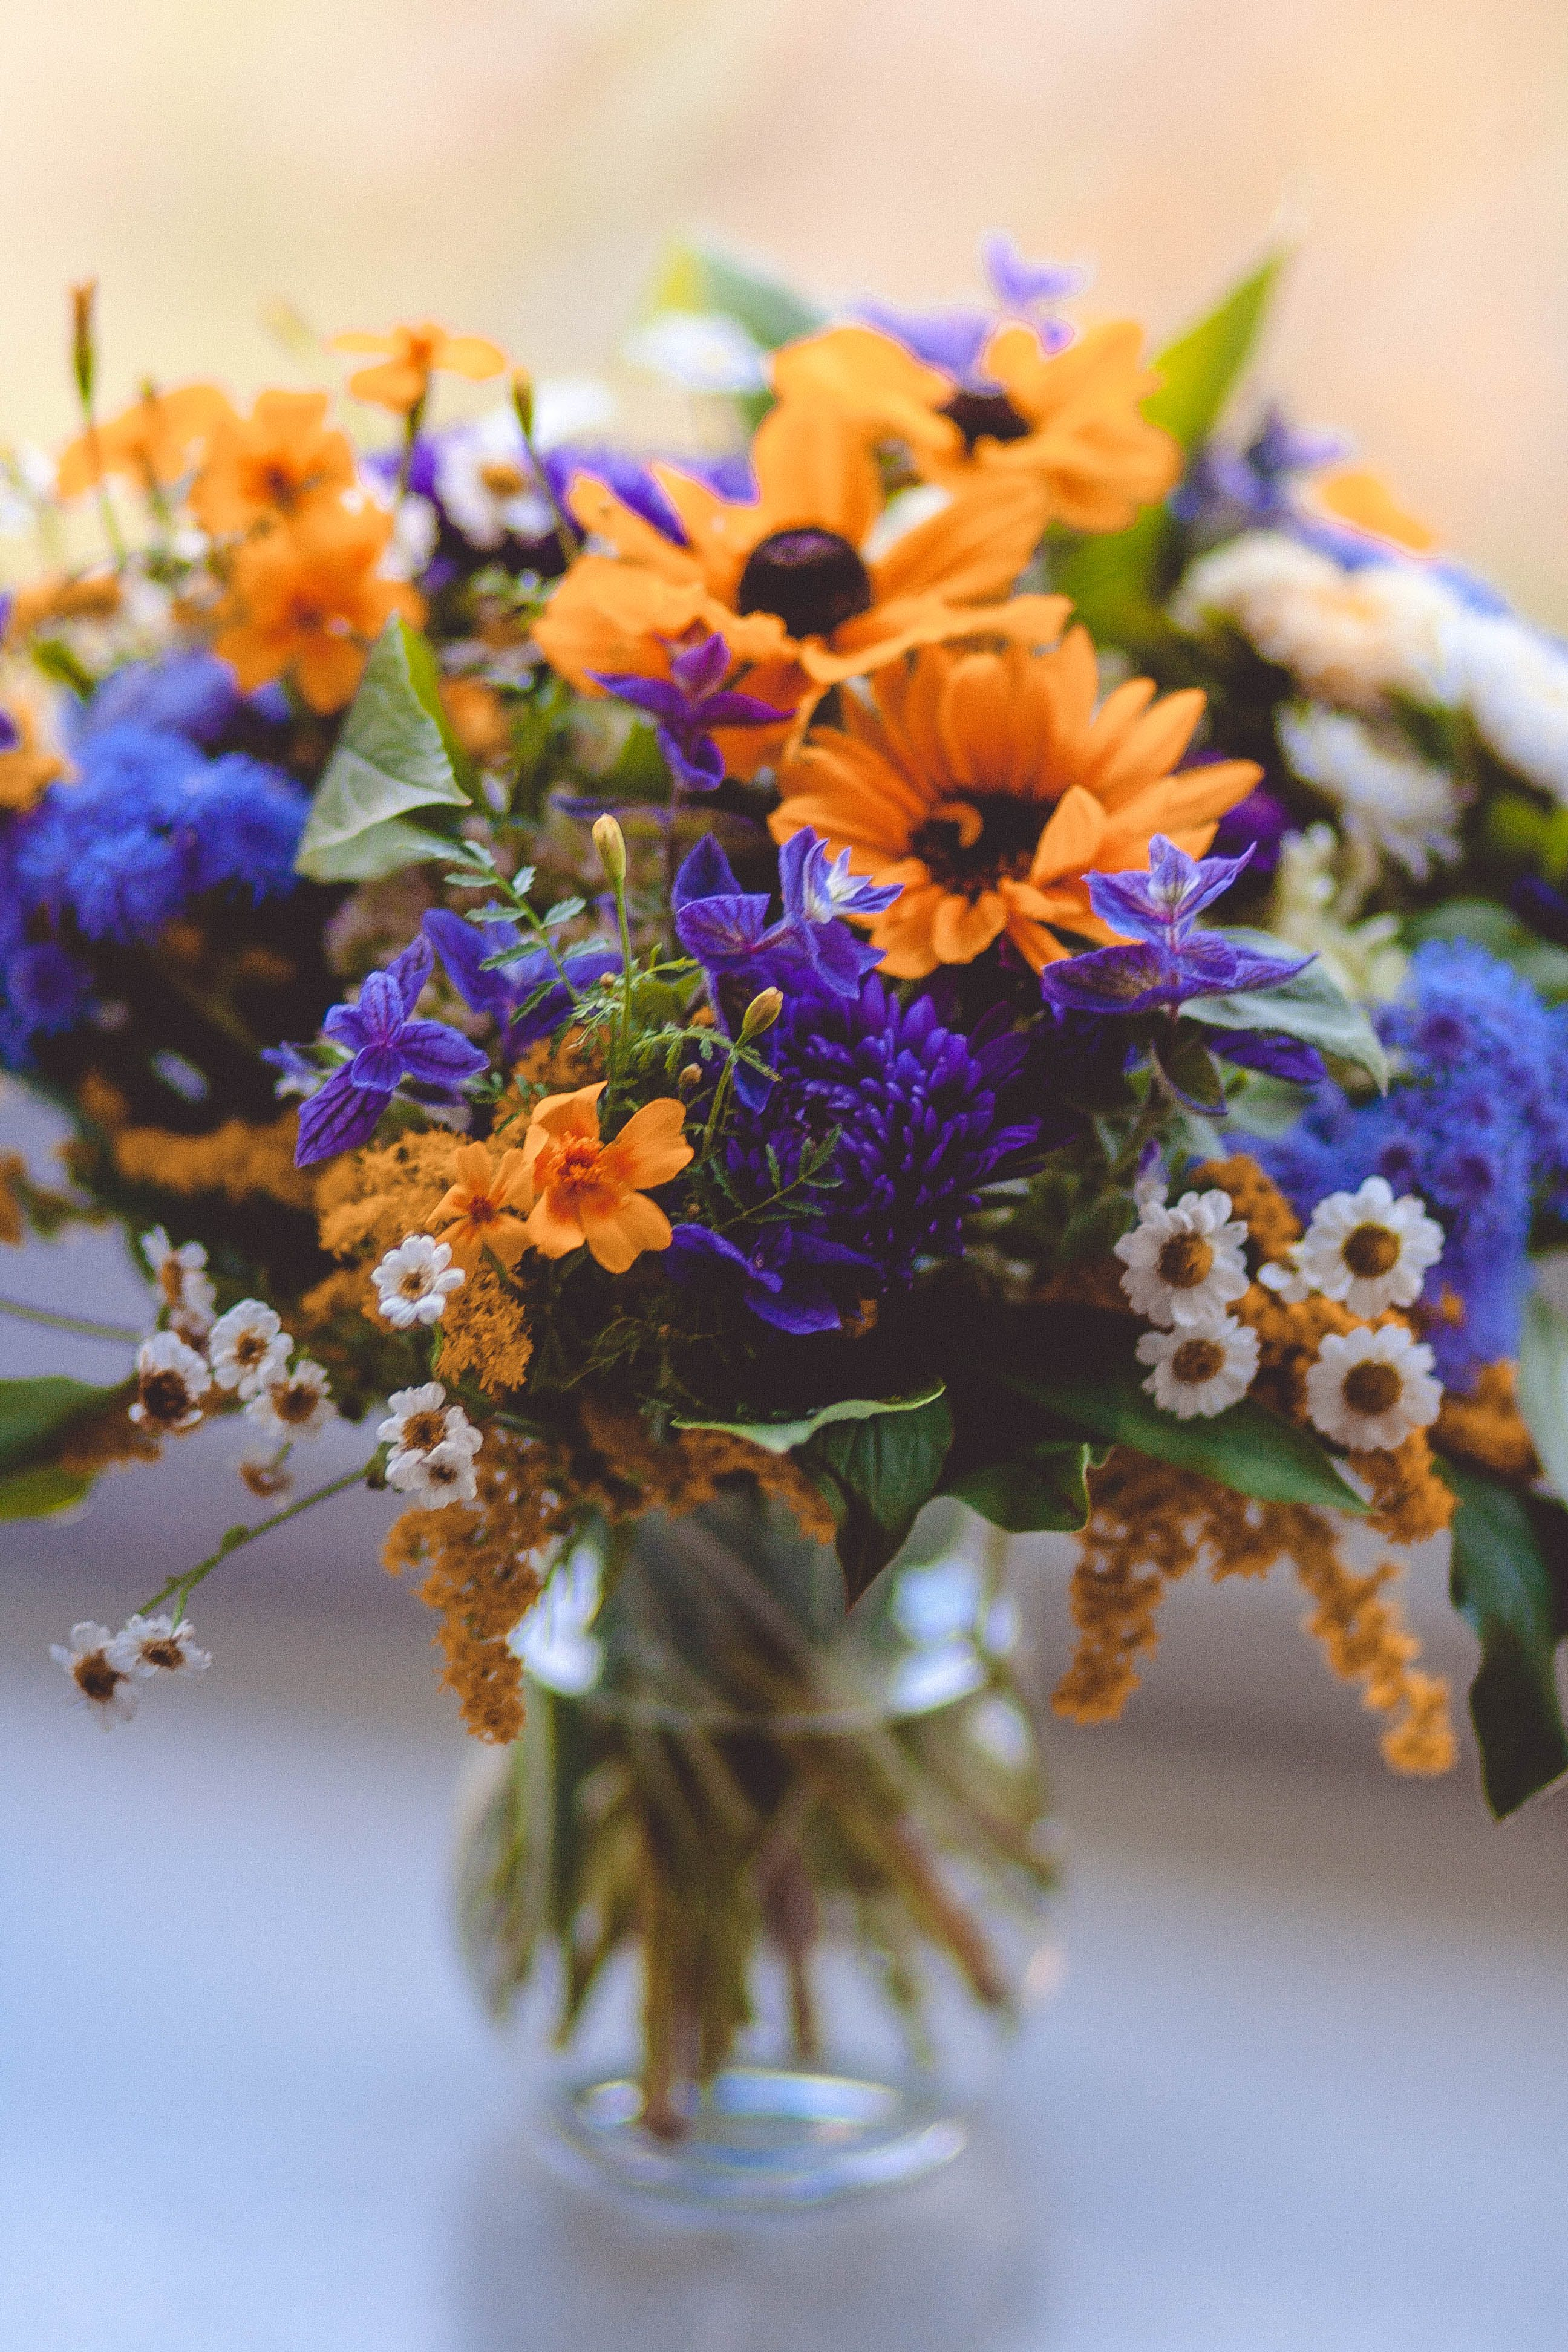 Orange Purple Green and White Flowers Decor